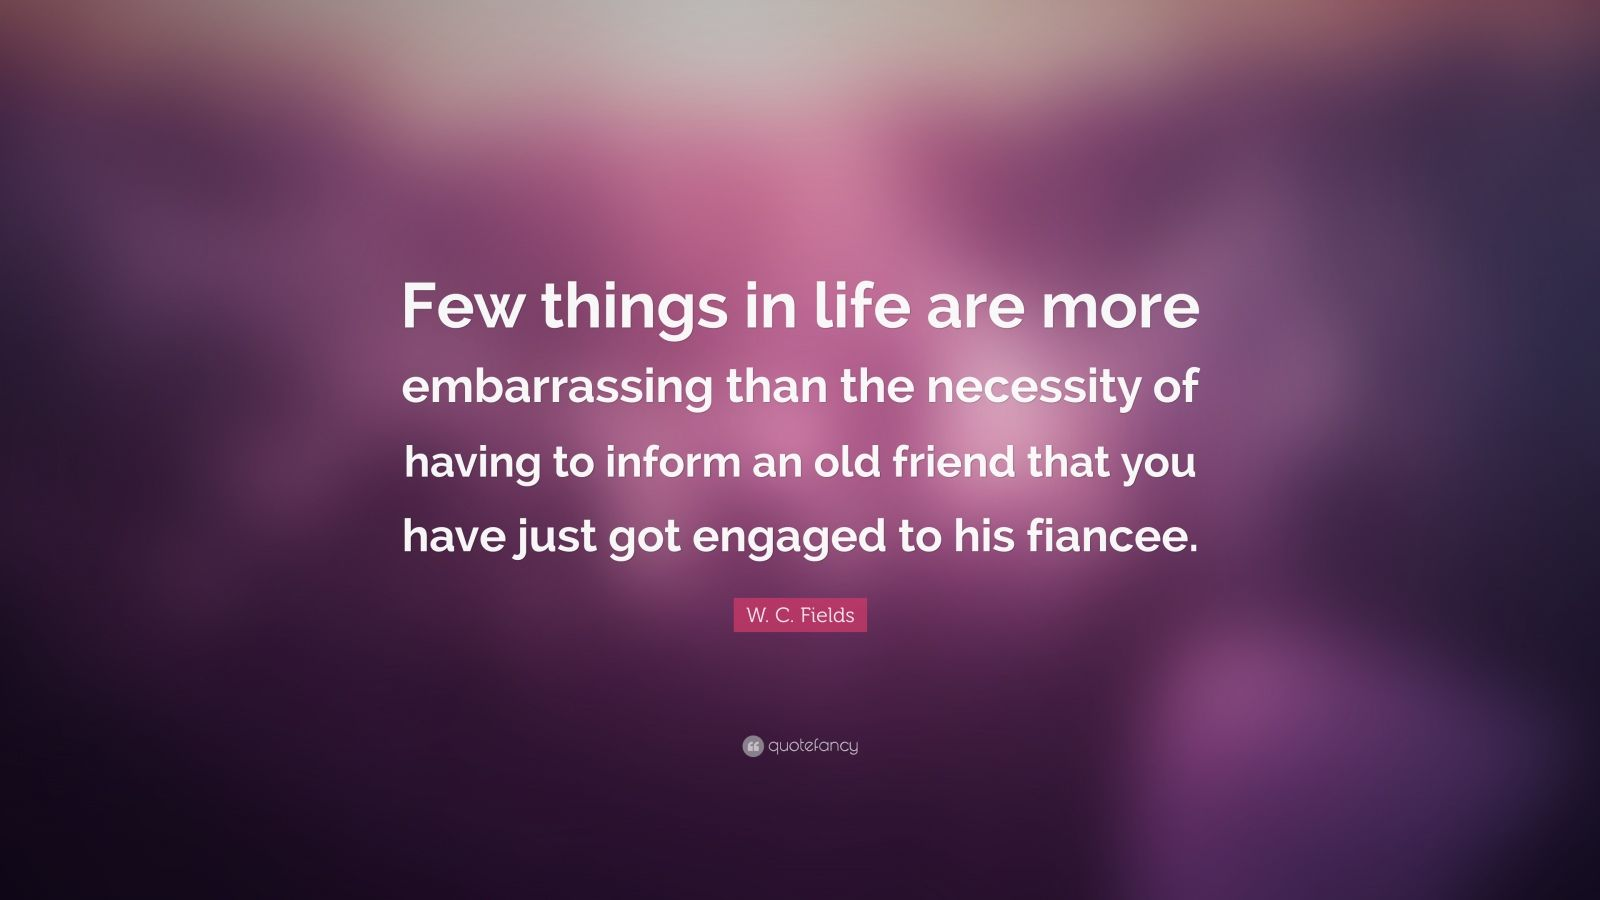 """W. C. Fields Quote: """"Few things in life are more embarrassing than the necessity of having to inform an old friend that you have just got engaged to his fiancee."""""""